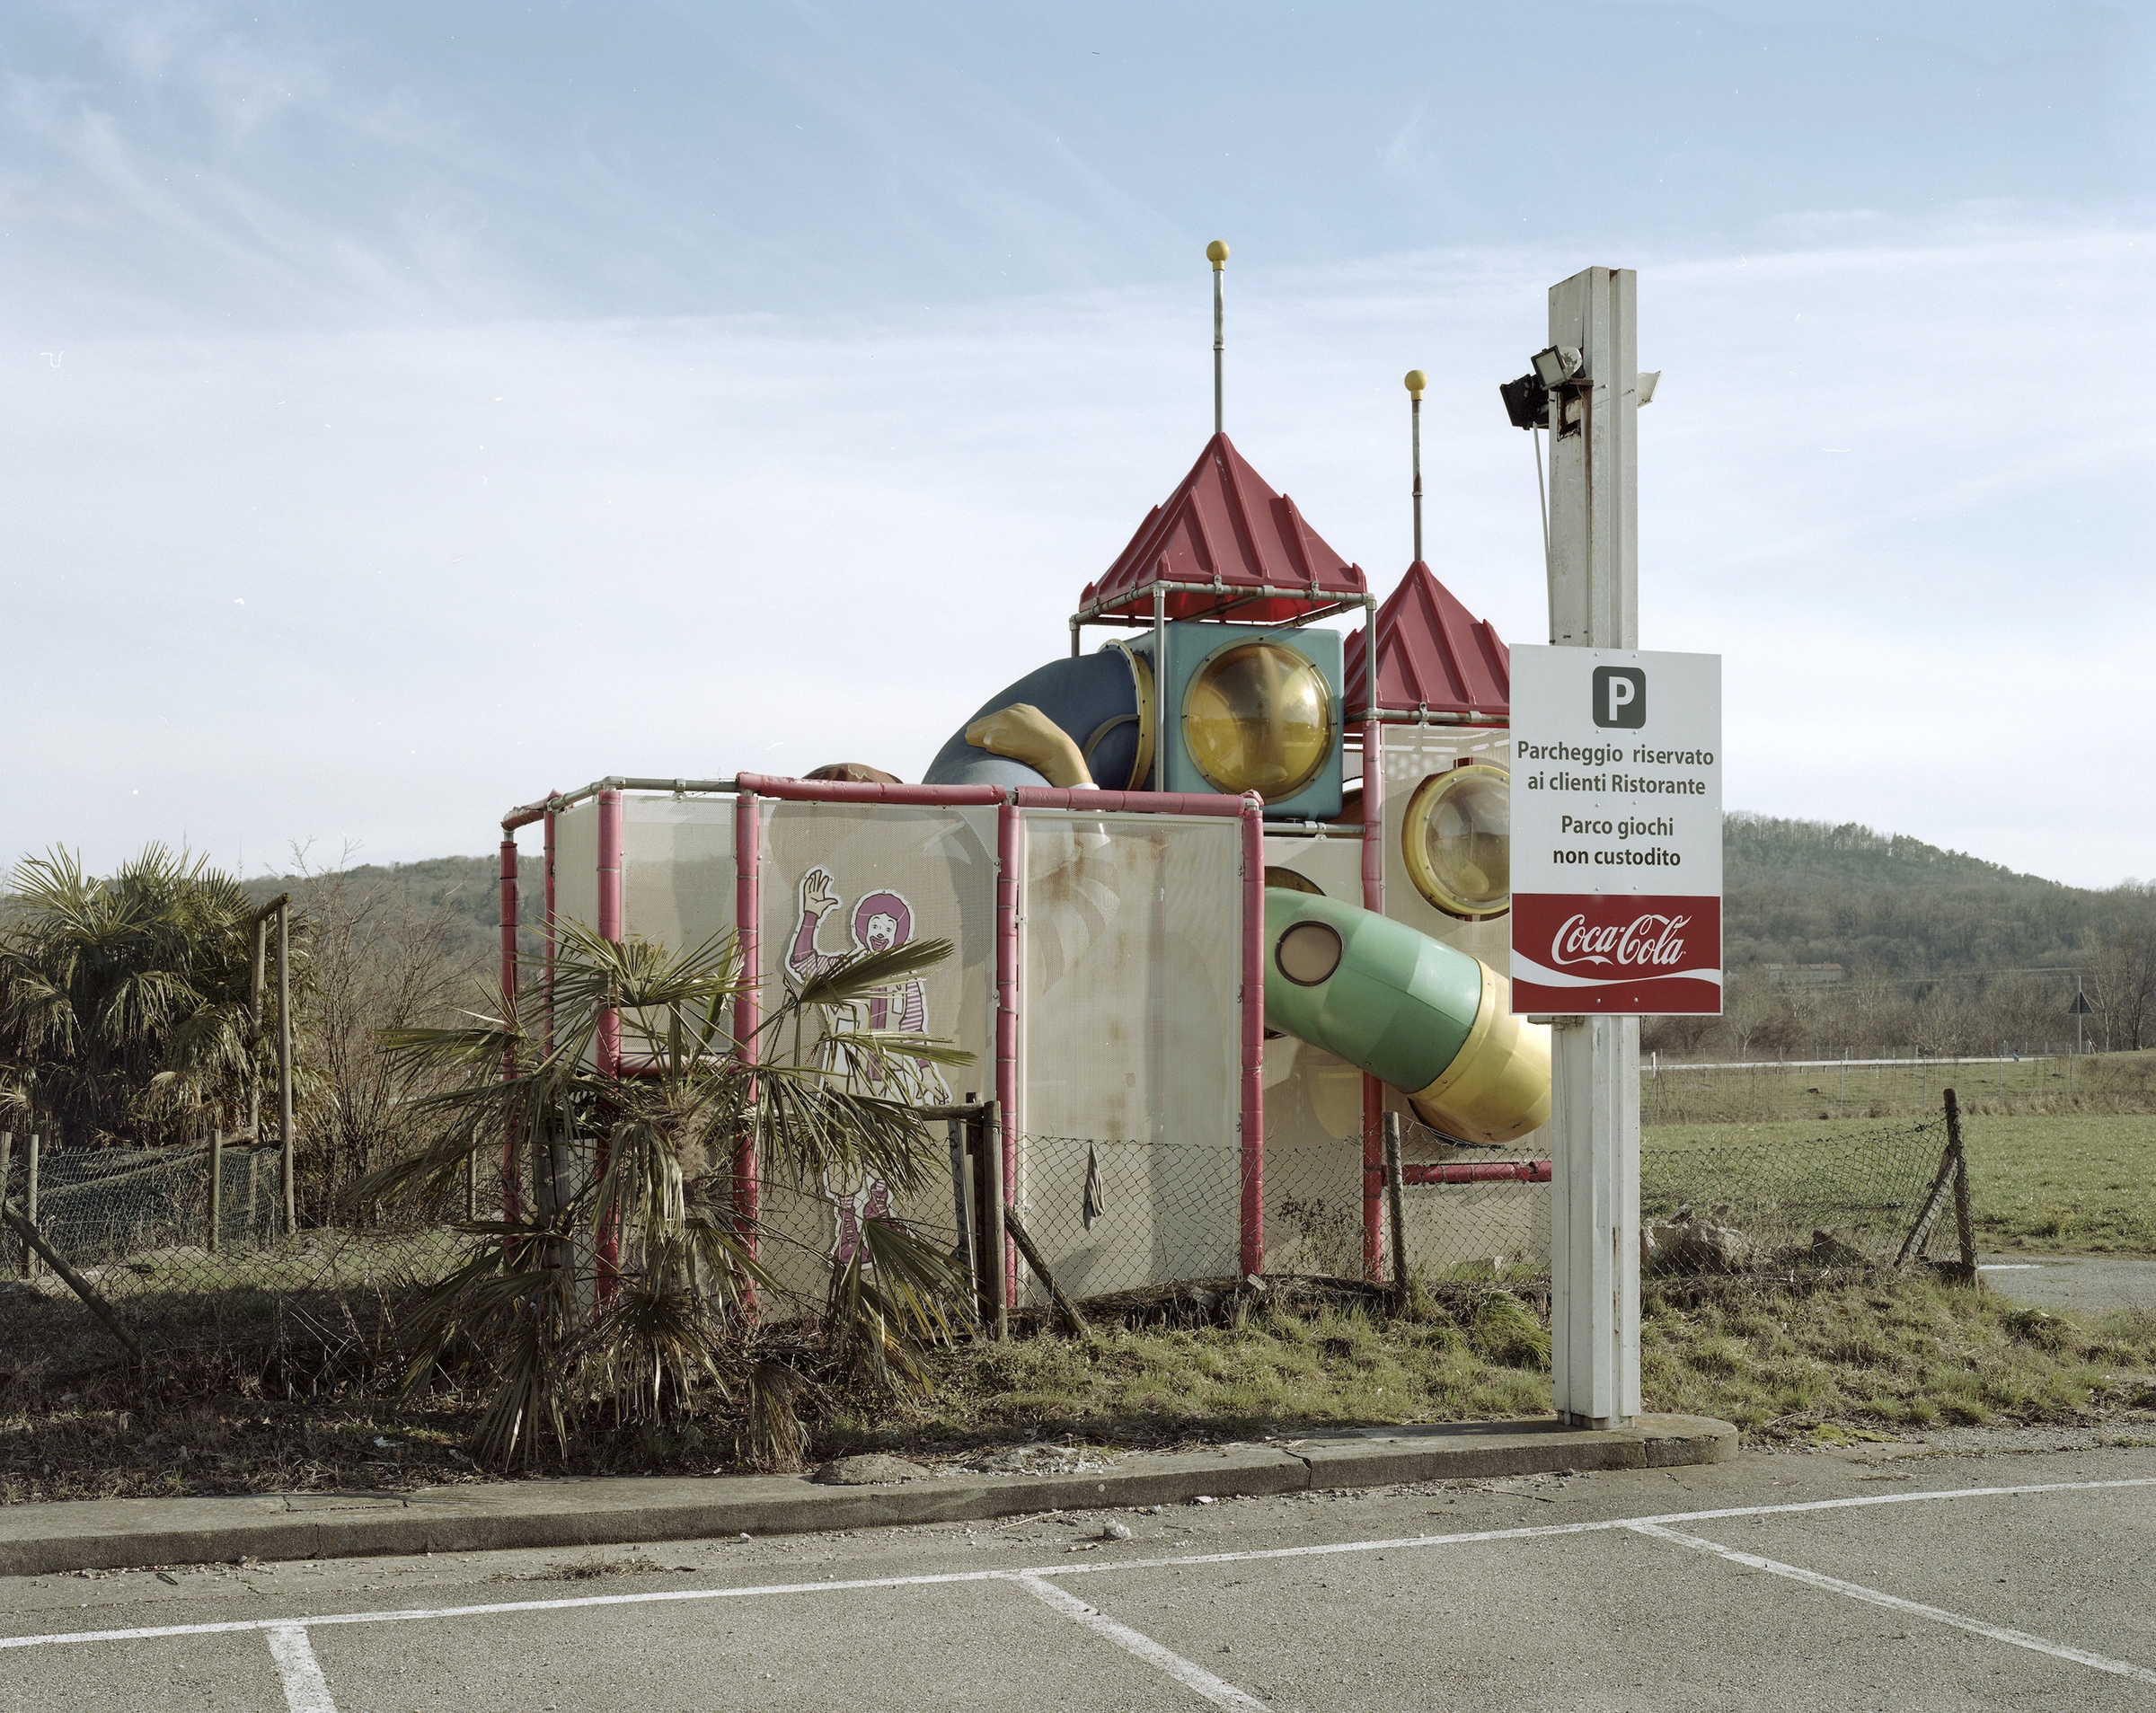 Ponti The aesthetics of the winners - Into the influence of the American landscape in the Europe